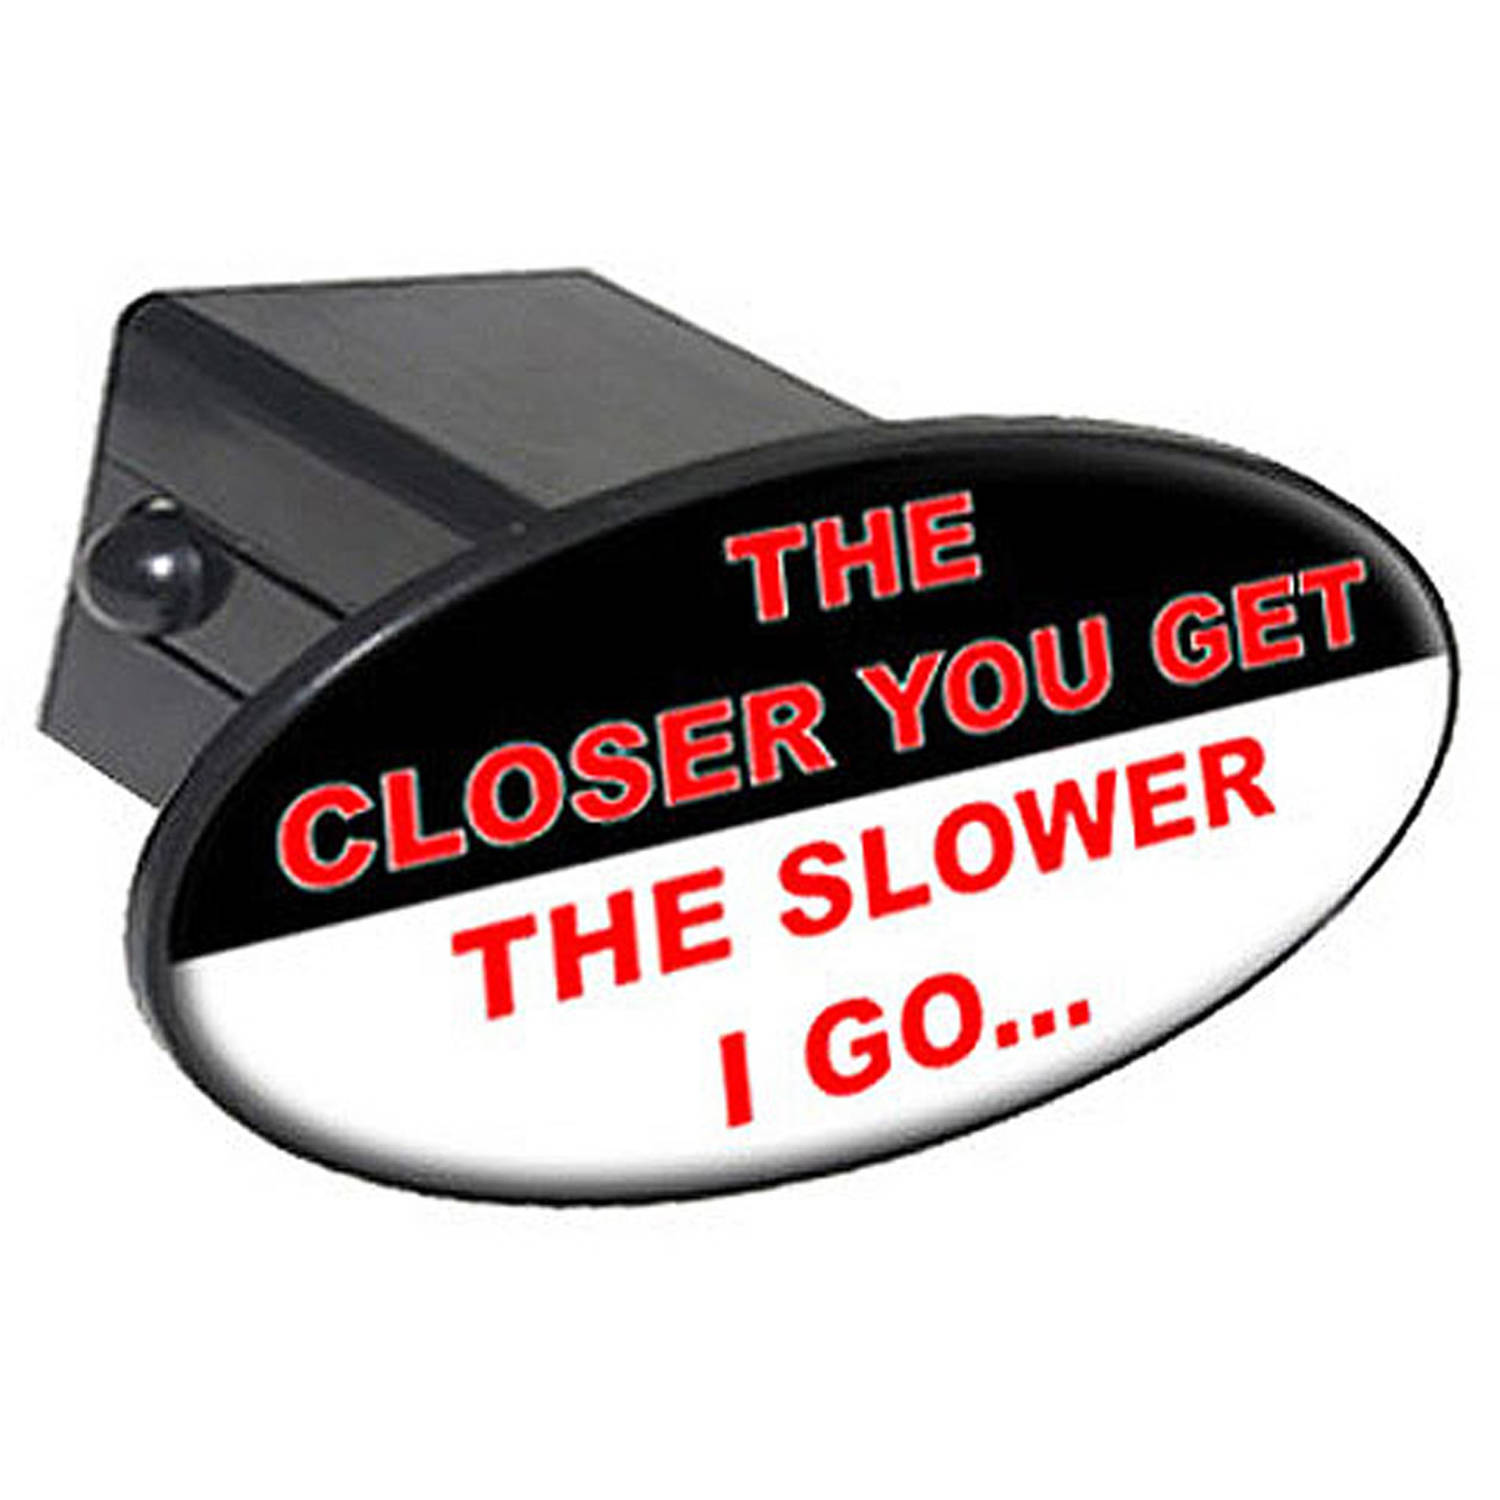 "The Closer You Get The Slower I Go, Hate Tailgating 2"" Oval Tow Trailer Hitch Cover Plug Insert"